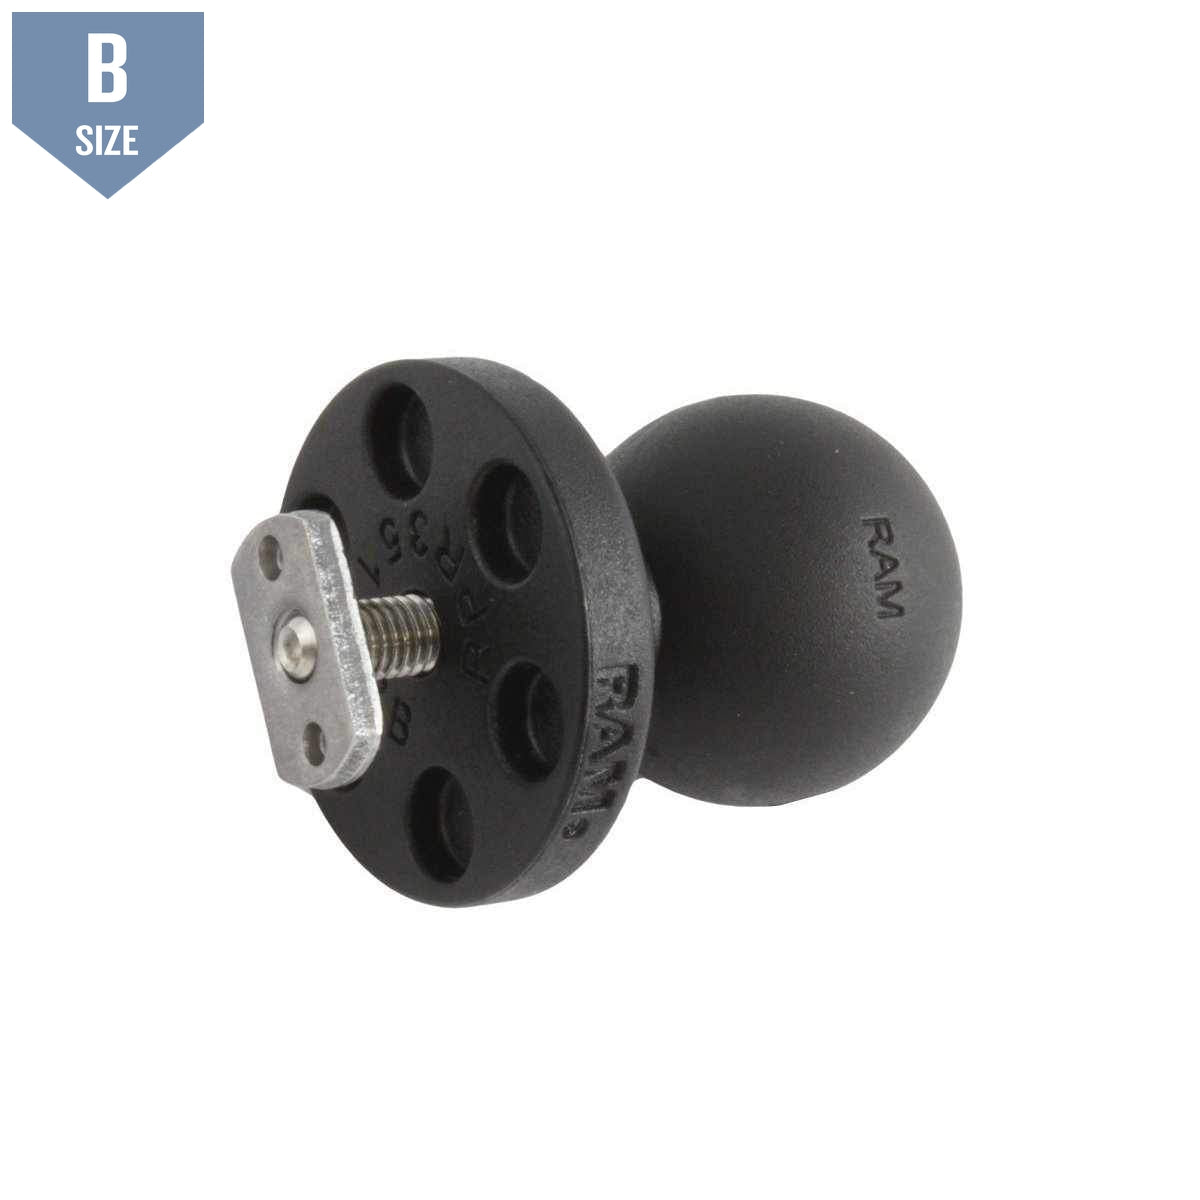 "RAM 1"" Track Ball for Flat Panels  (RAP-B-375U)"